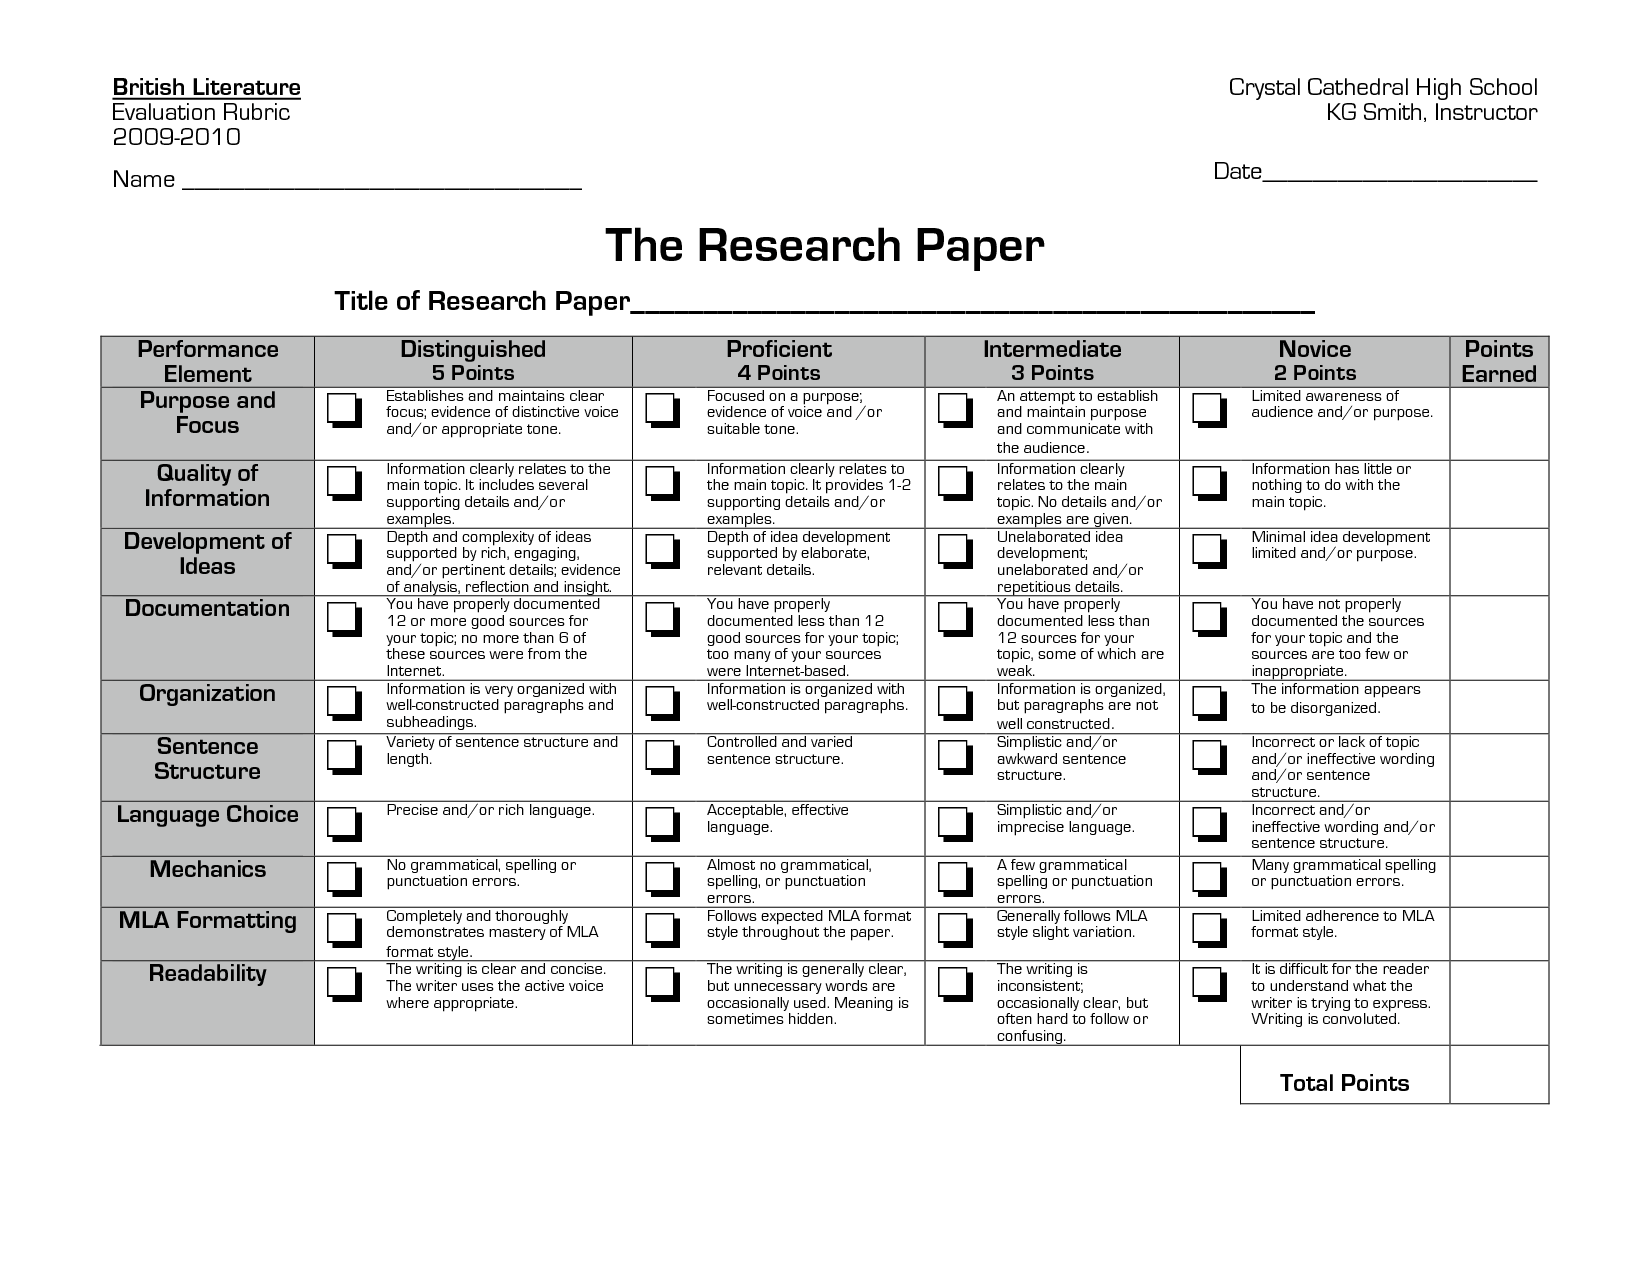 rubric for a research paper in history Research paper rubric: grade 10 history - social read more about thesis, limited, historical, sources, adequate and passable.